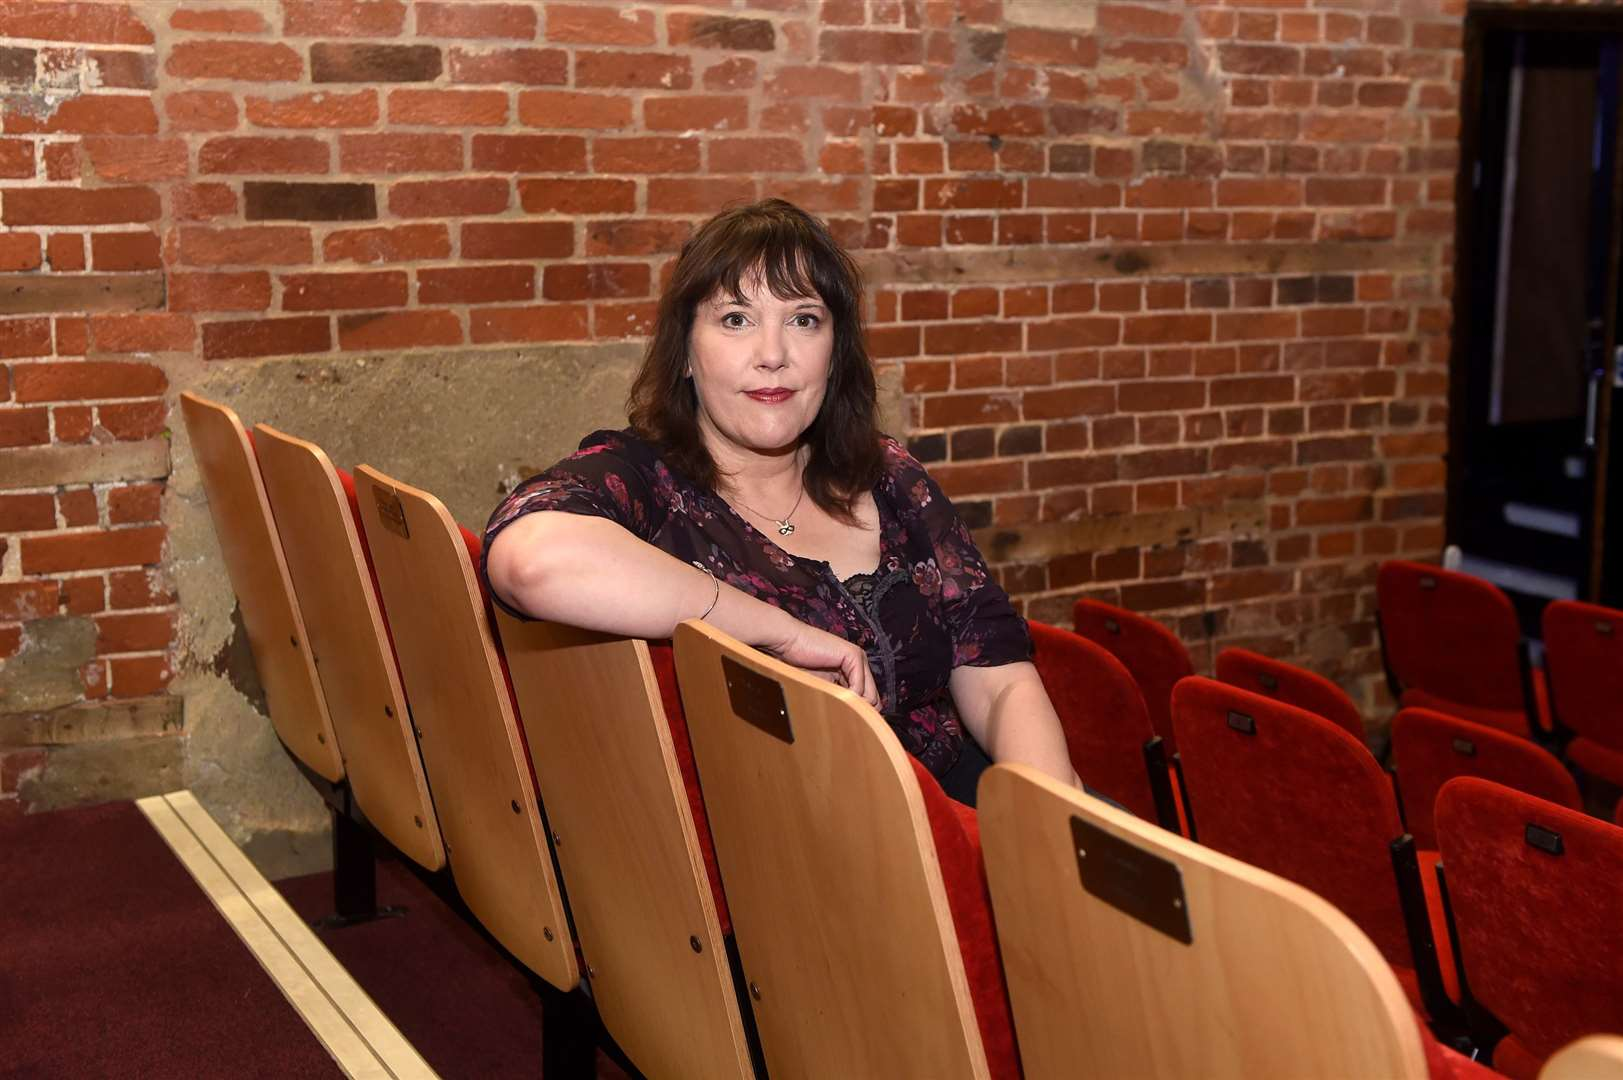 The Sudbury Quay Theatre is launching a new online project, which will enable the public to watch a range of performances and shows, while taking part in a series of virtual events by posting their own videos....Pictured: Manager Sharon Buckler....PICTURE: Mecha Morton .... (36764586)